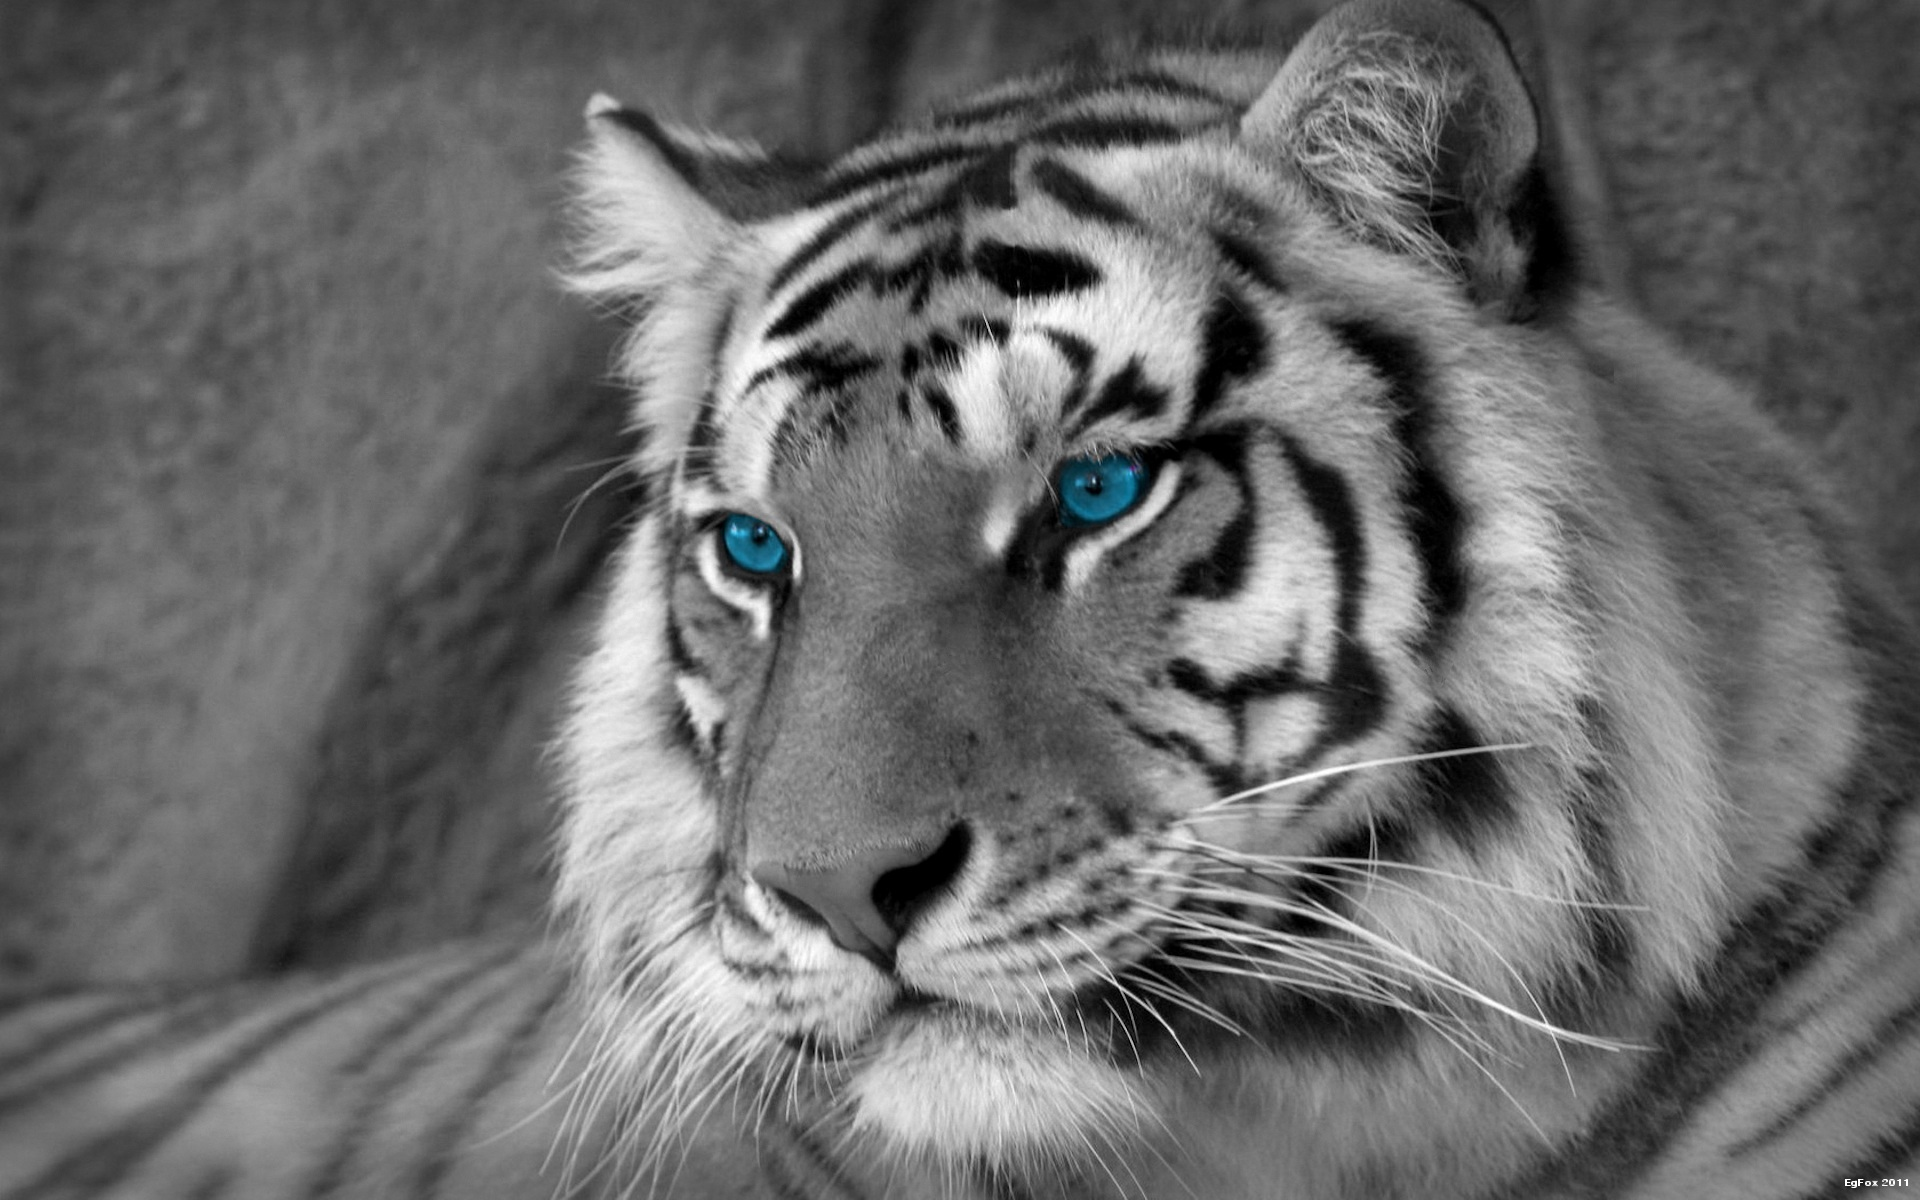 Wallpapers HD Iphone White Tigers Tiger White Lion Hd Full Hd Pics 1920x1200